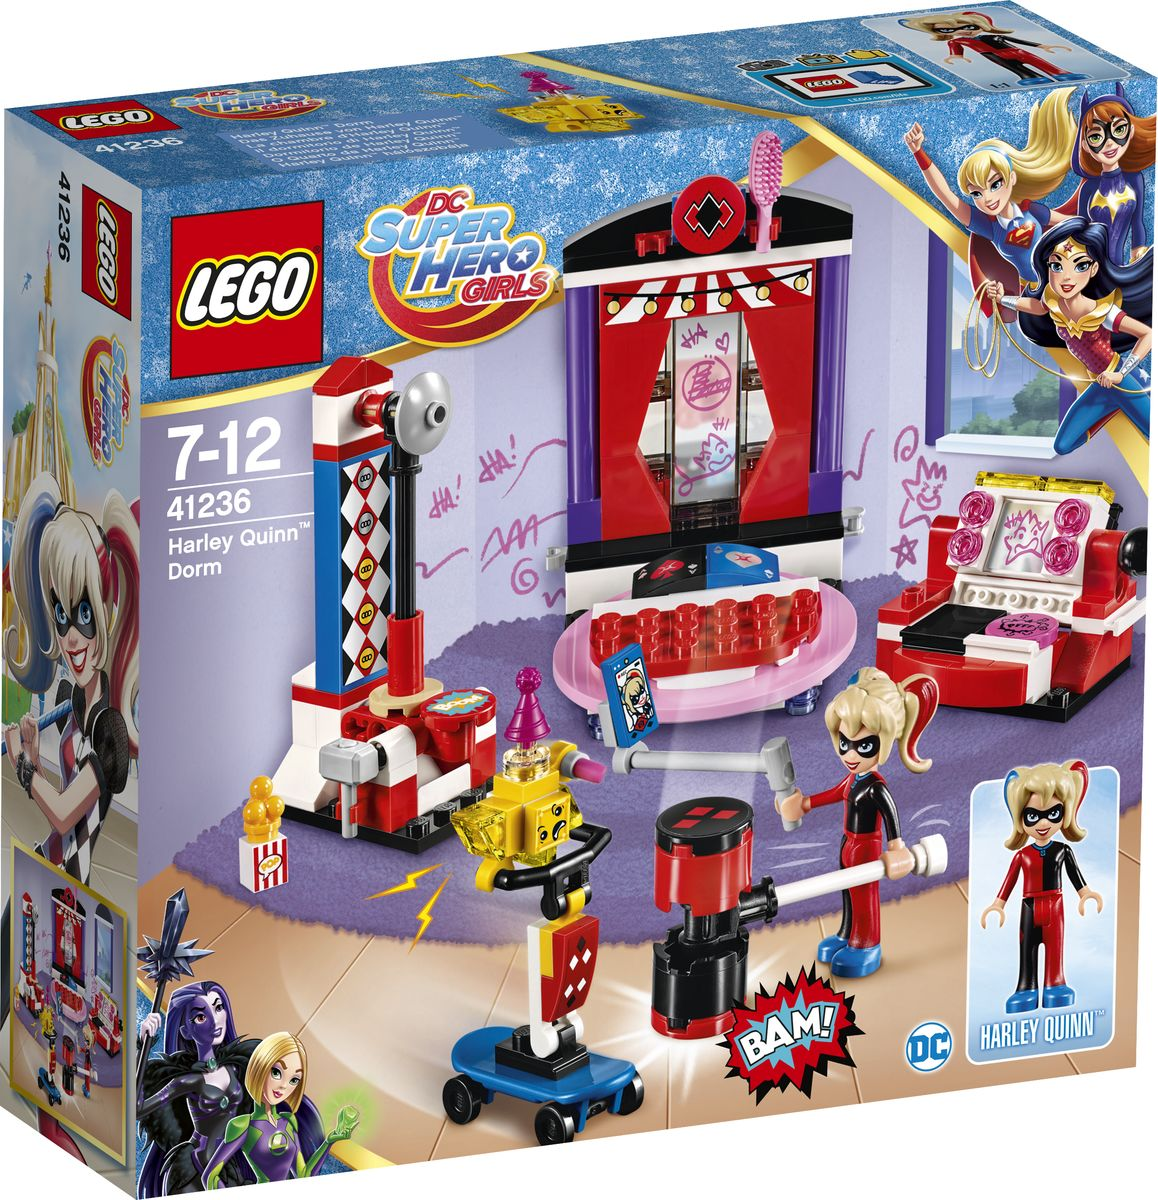 LEGO DC Super Hero Girls Конструктор Дом Харли Квинн 41236 конструктор lego super hero girls харли квинн спешит на помощь 217 элементов 41231